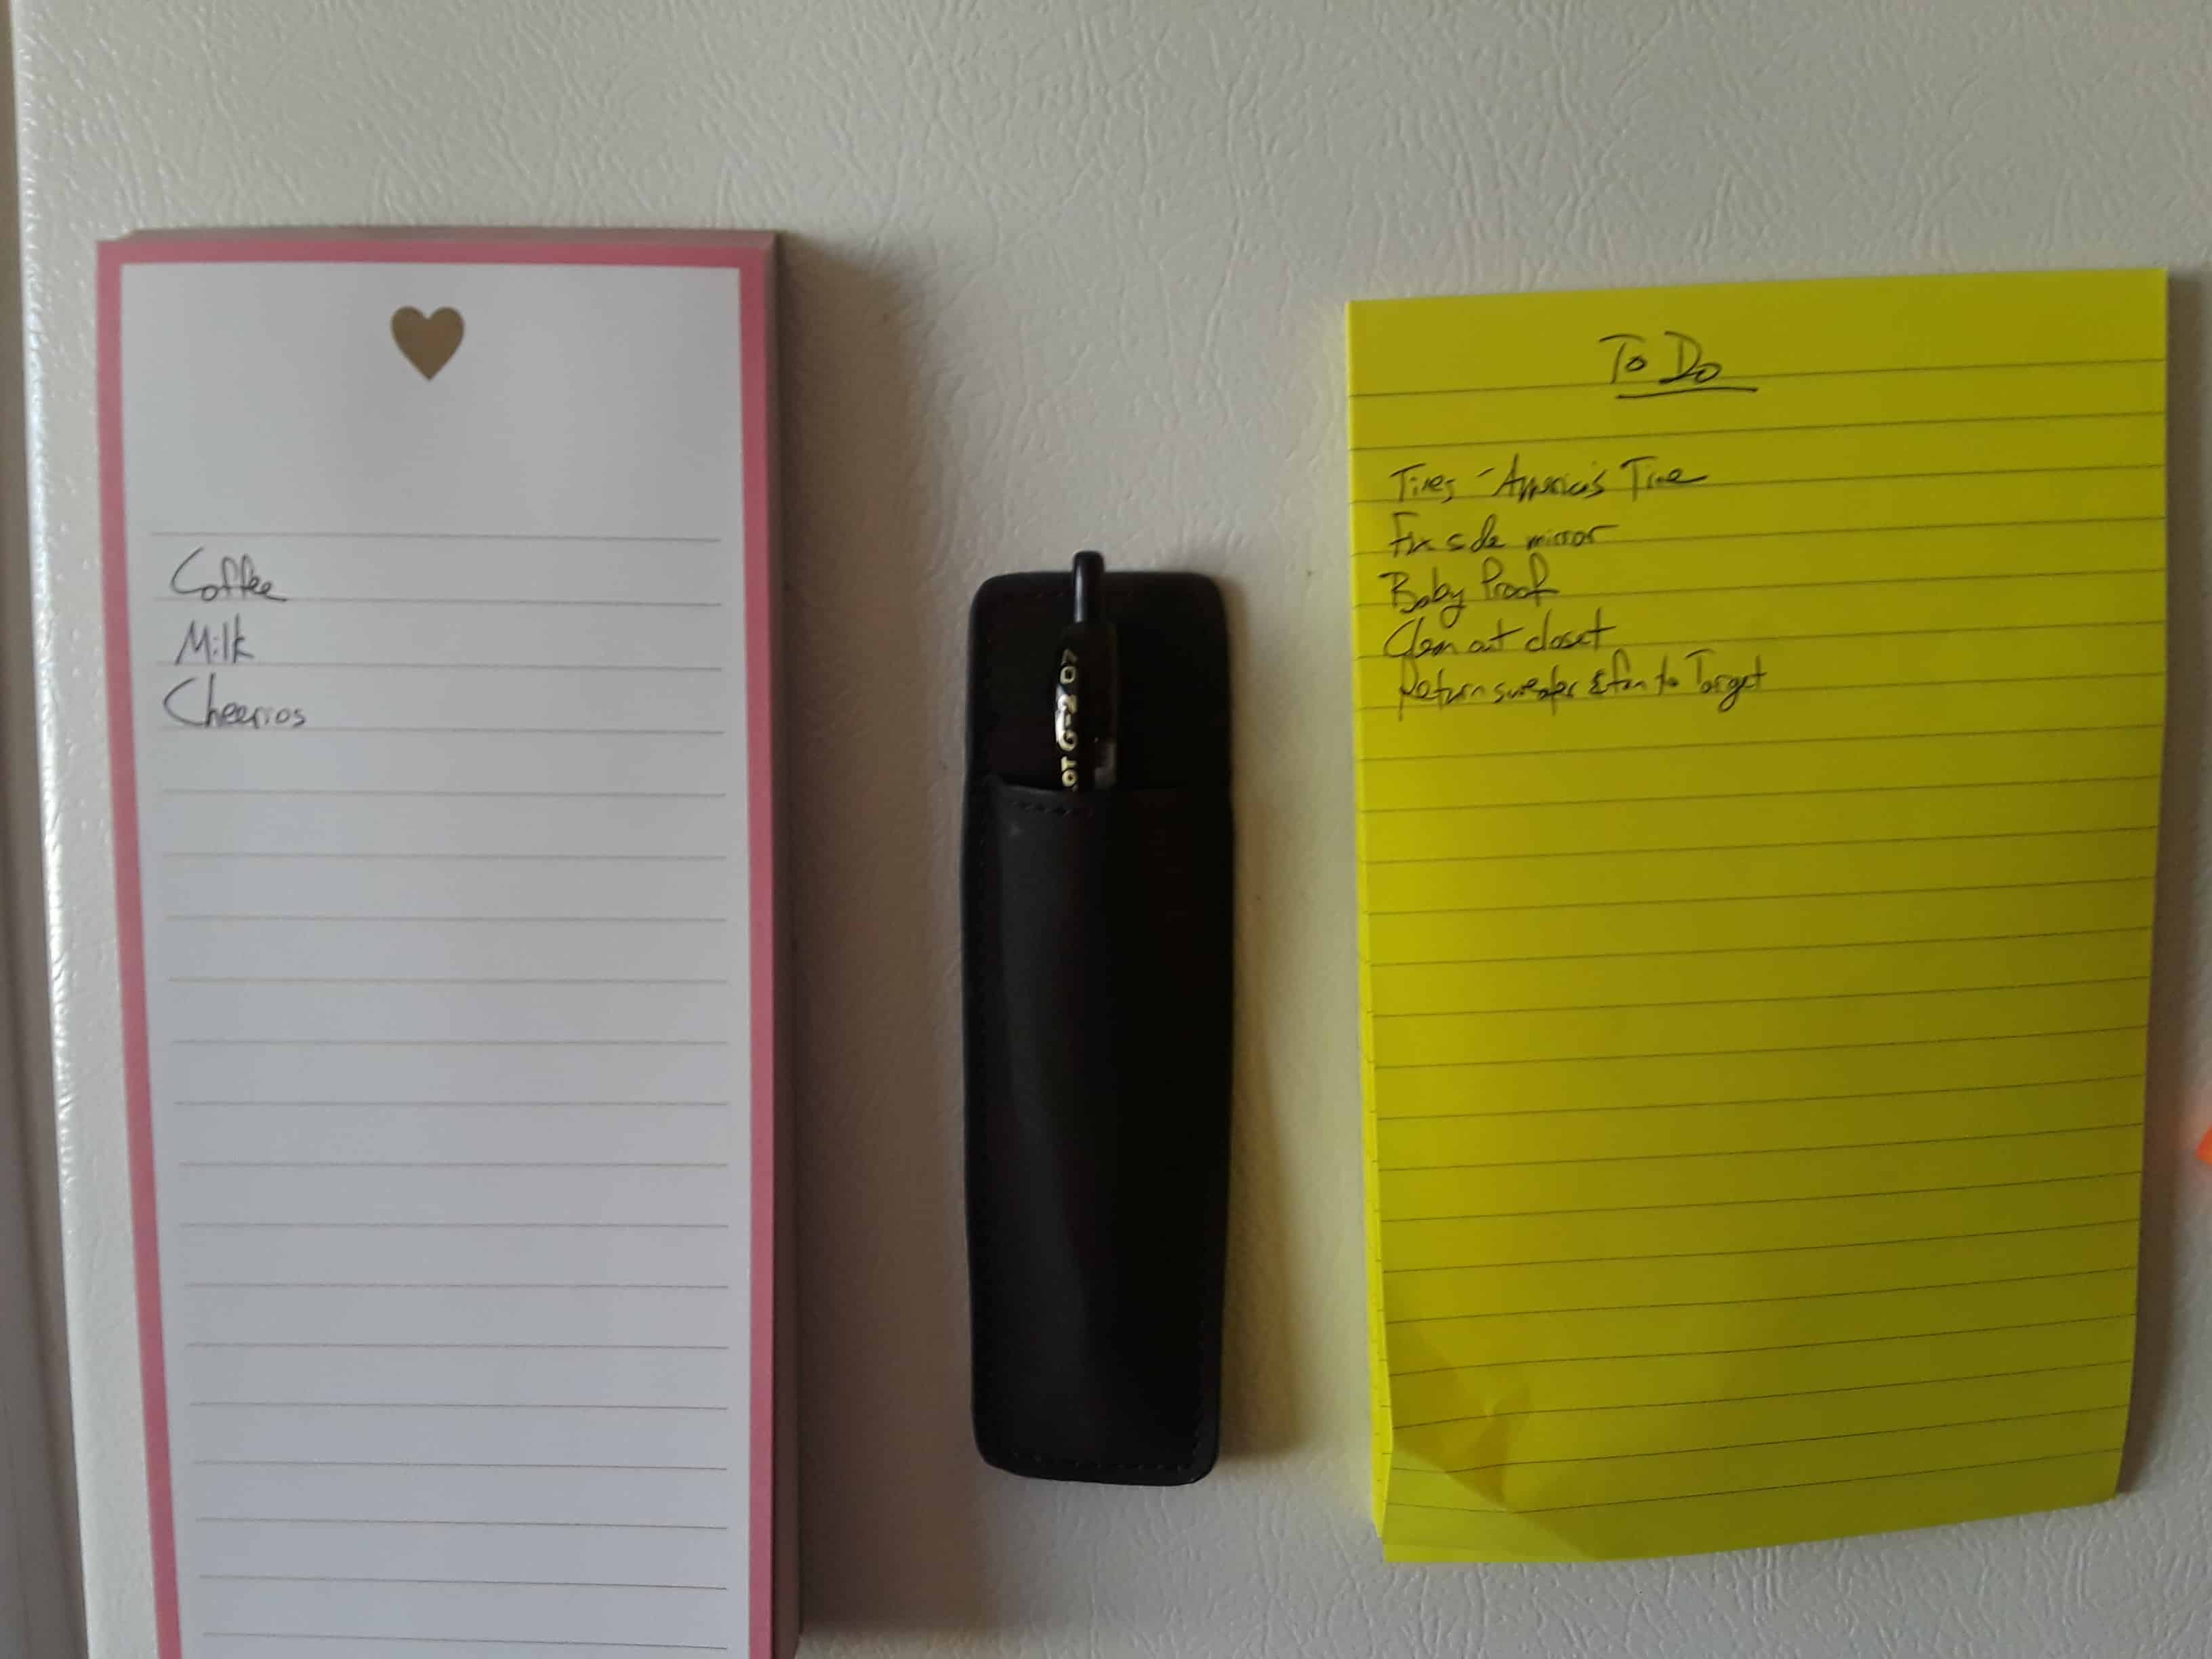 Two notepads and a magnetic pencil cup holder.